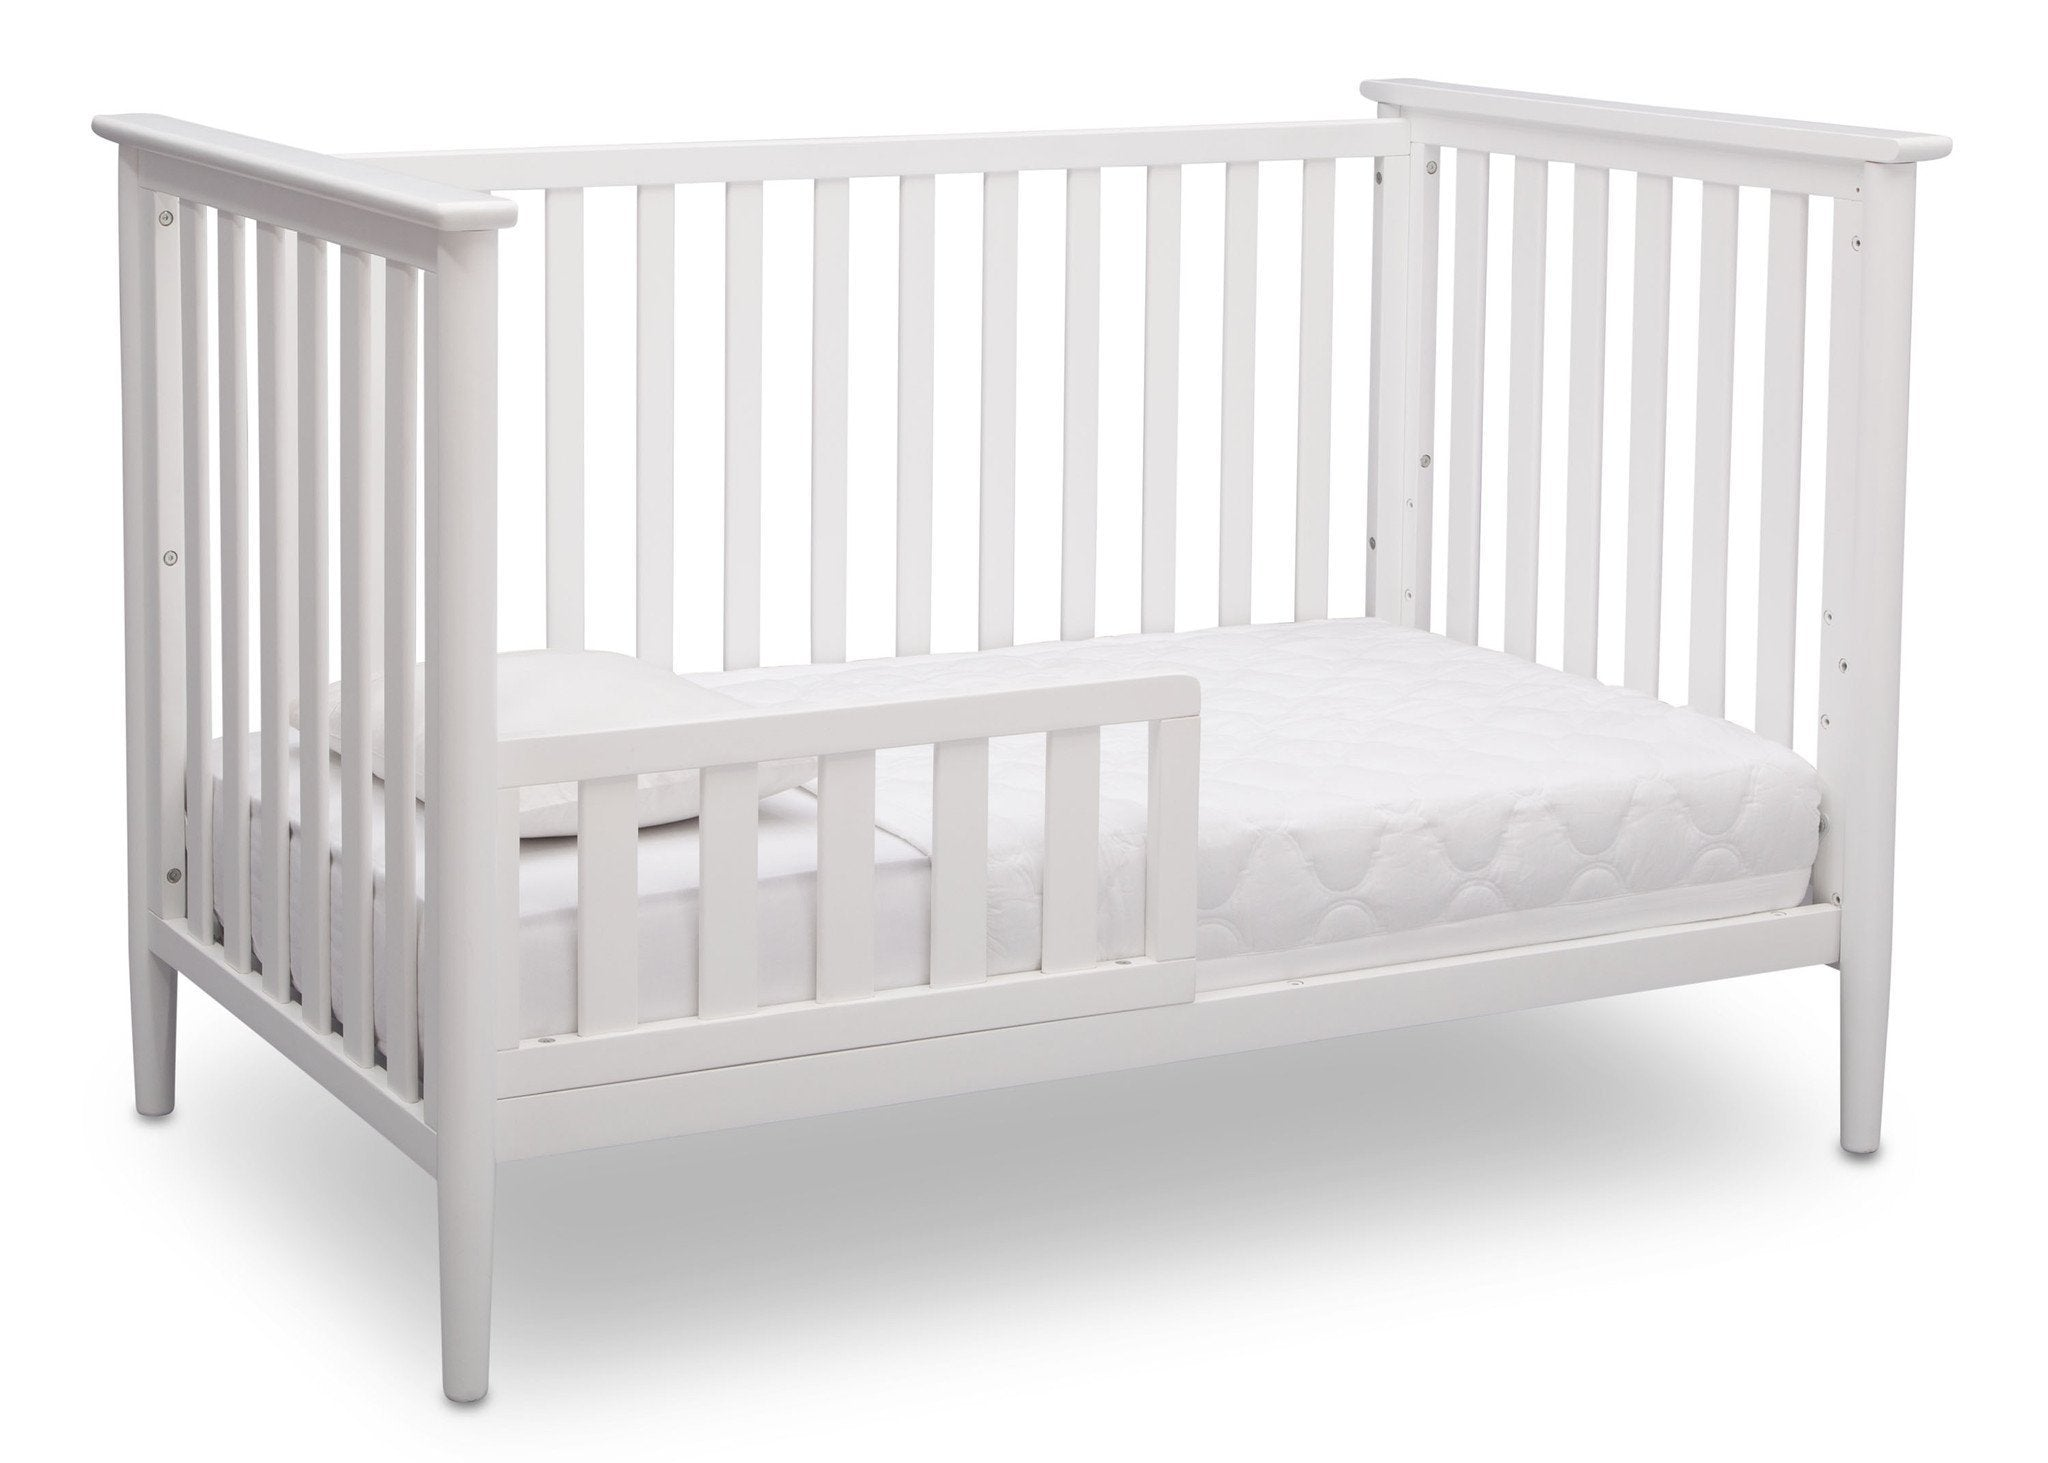 graco storm awesome sorelle furniture white of elliott ambiance size delta crib lauren children cribs curved bennington in best ideas convertible full